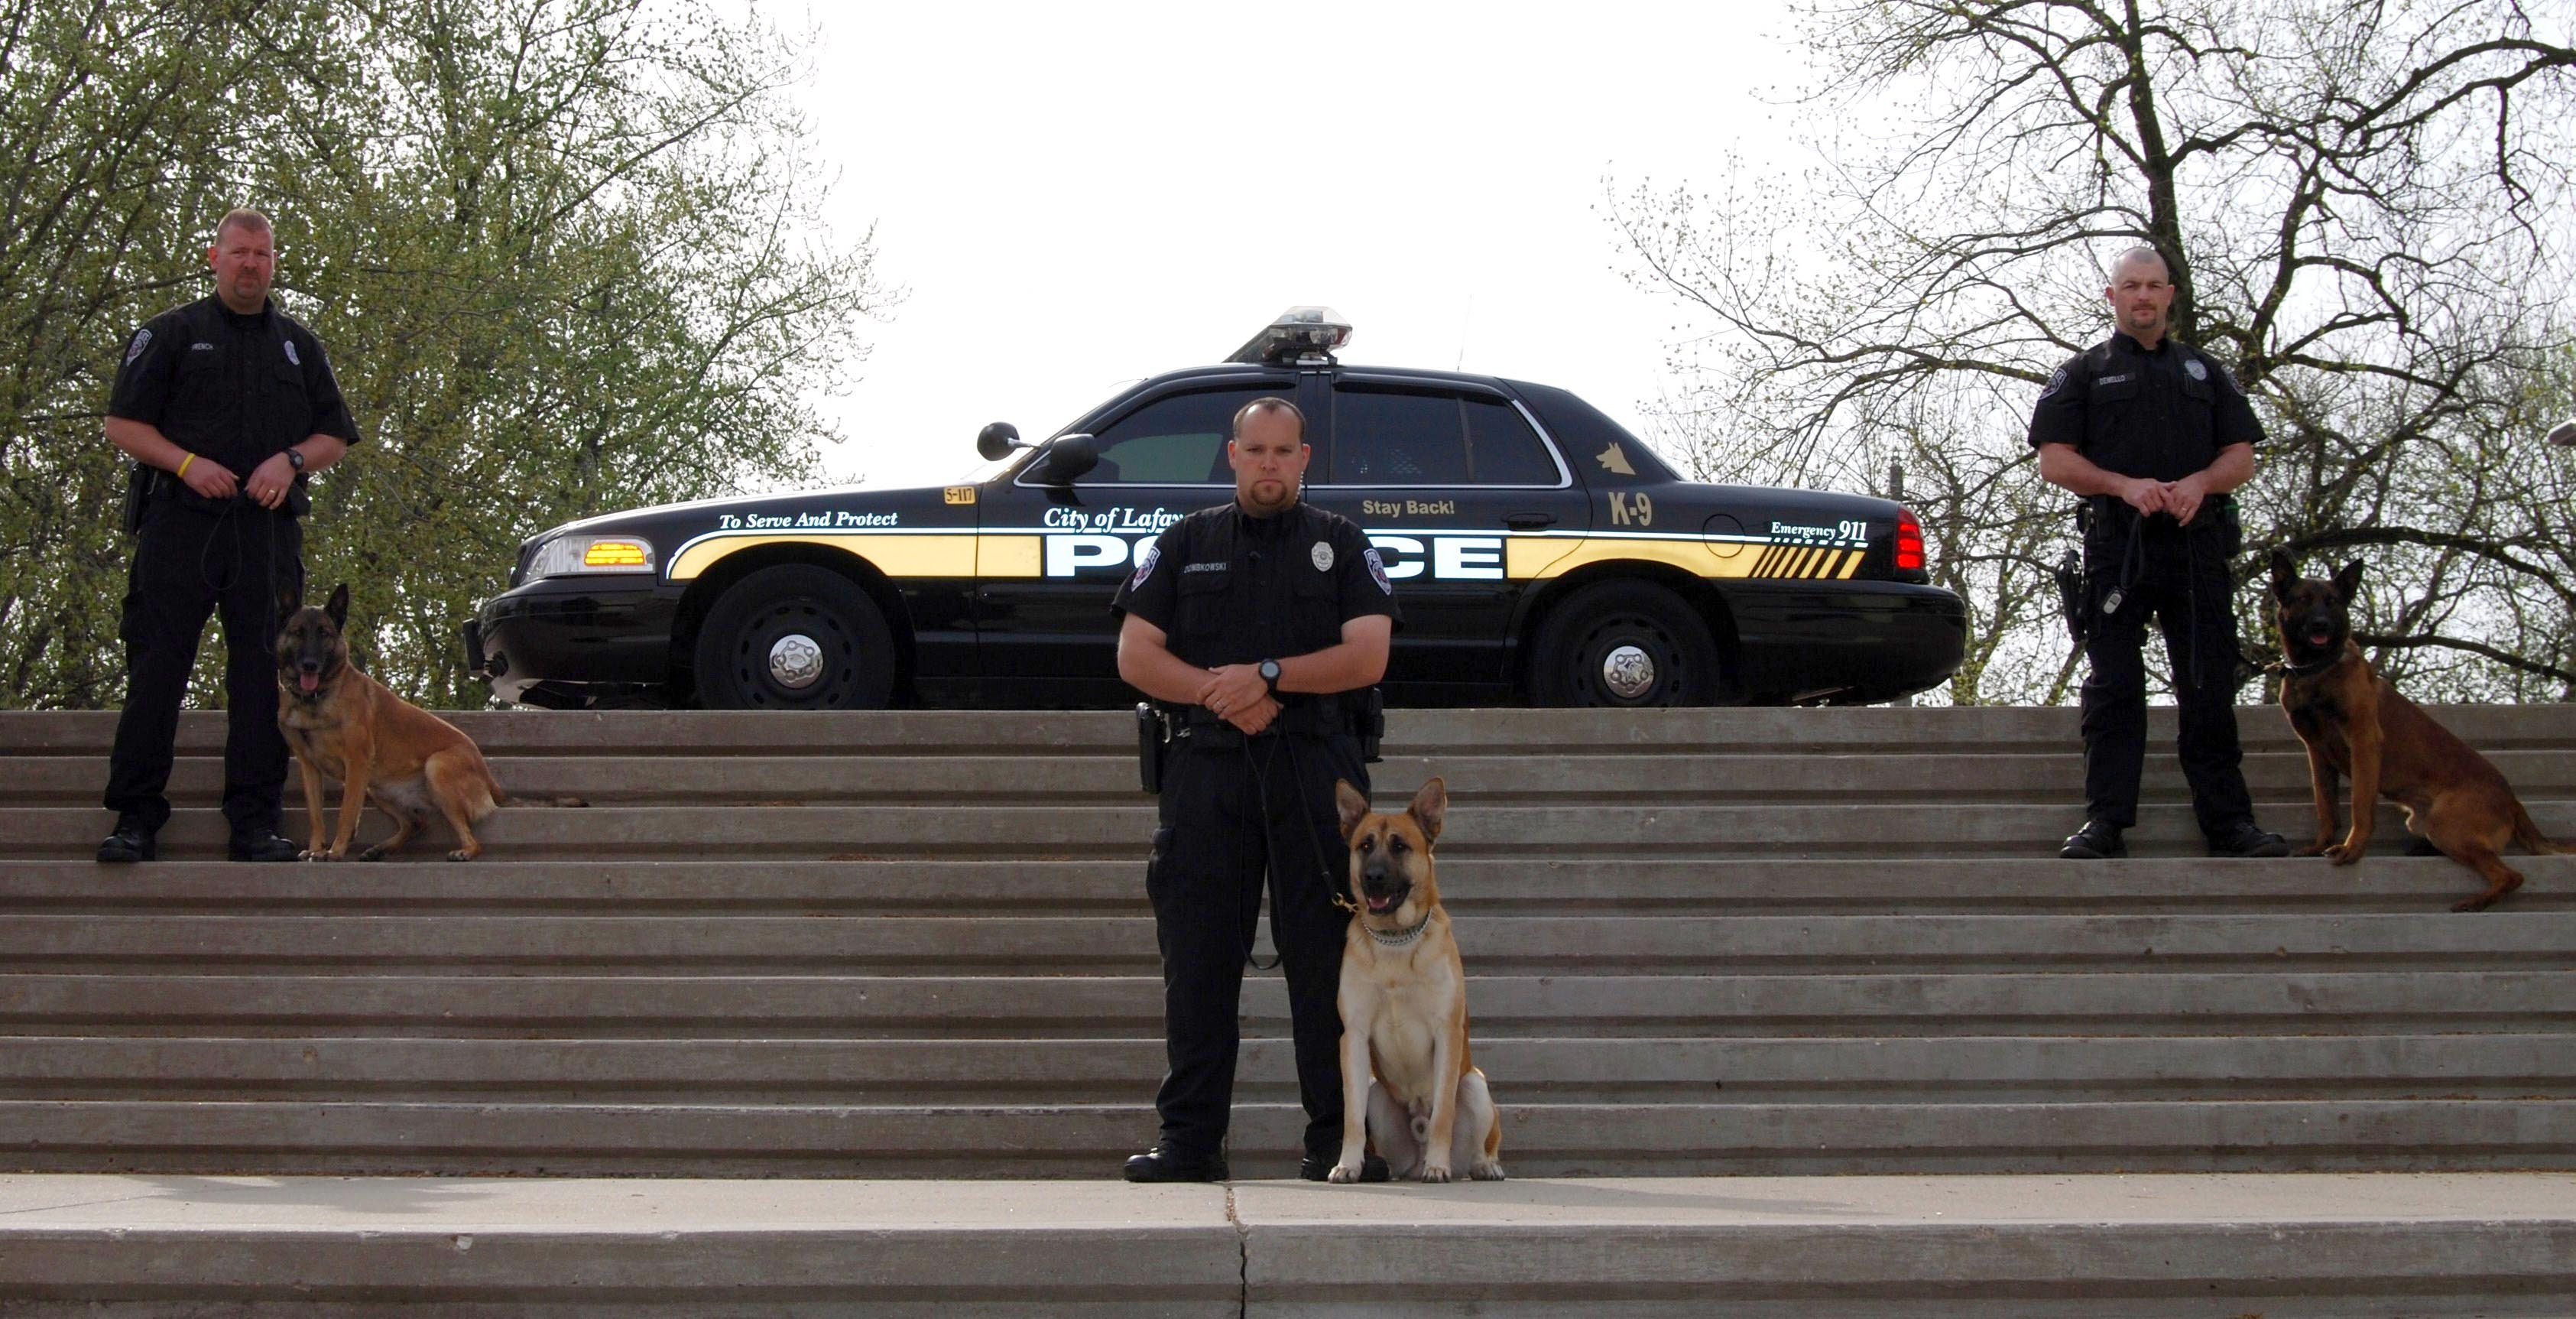 K9 Unit on Steps With a Patrol Car Behind Them